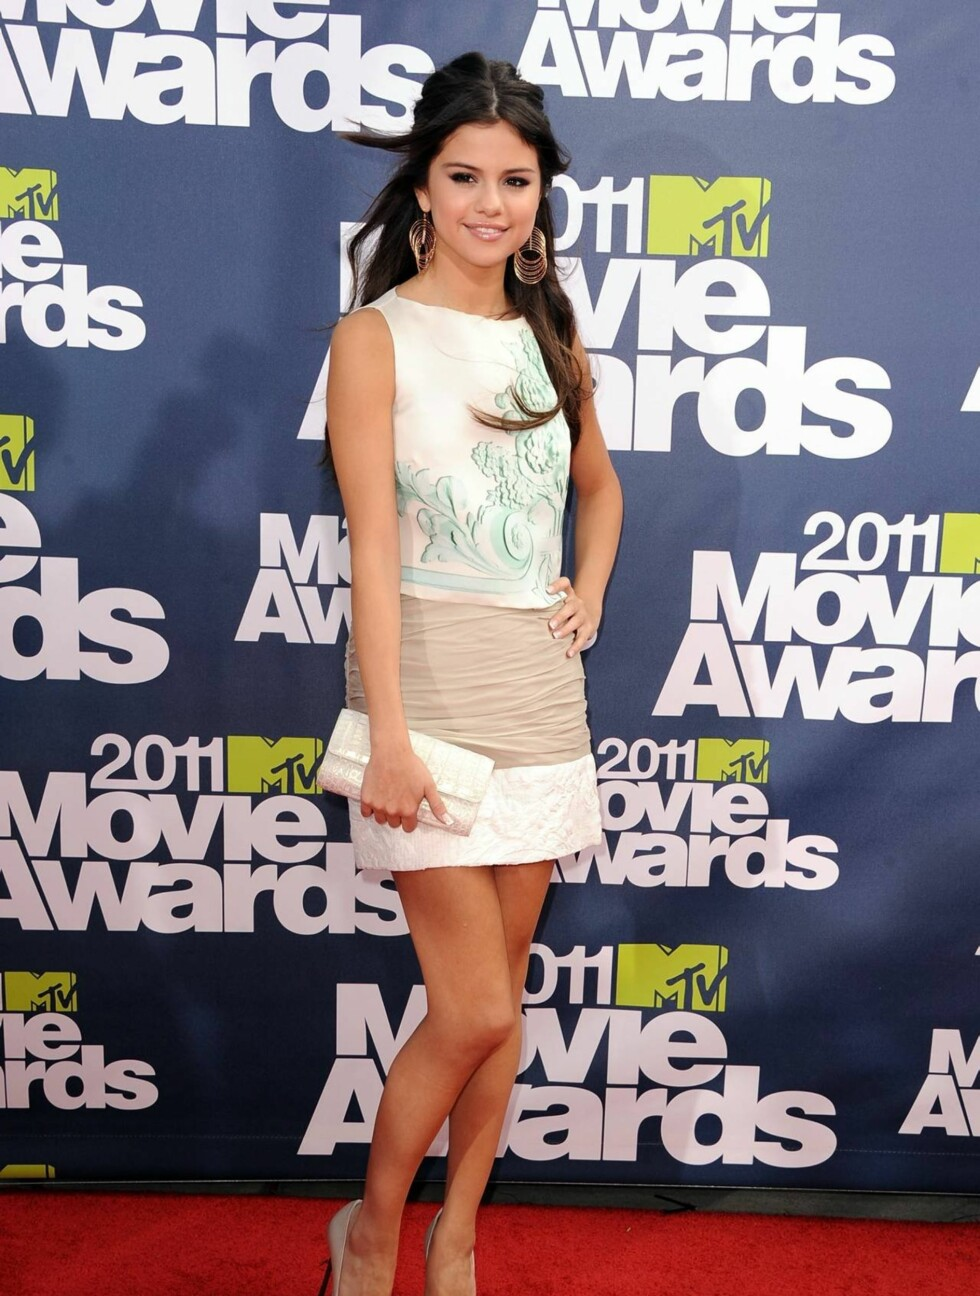 <strong>UNIVERSAL CITY, CA - JUNE 05:</strong>  Actress Selena Gomez arrives at the 2011 MTV Movie Awards at Universal Studios Gibson Amphitheatre on June 5, 2011 in Universal City, California.  (Photo by Steve Granitz/WireImage) Foto: All Over Press